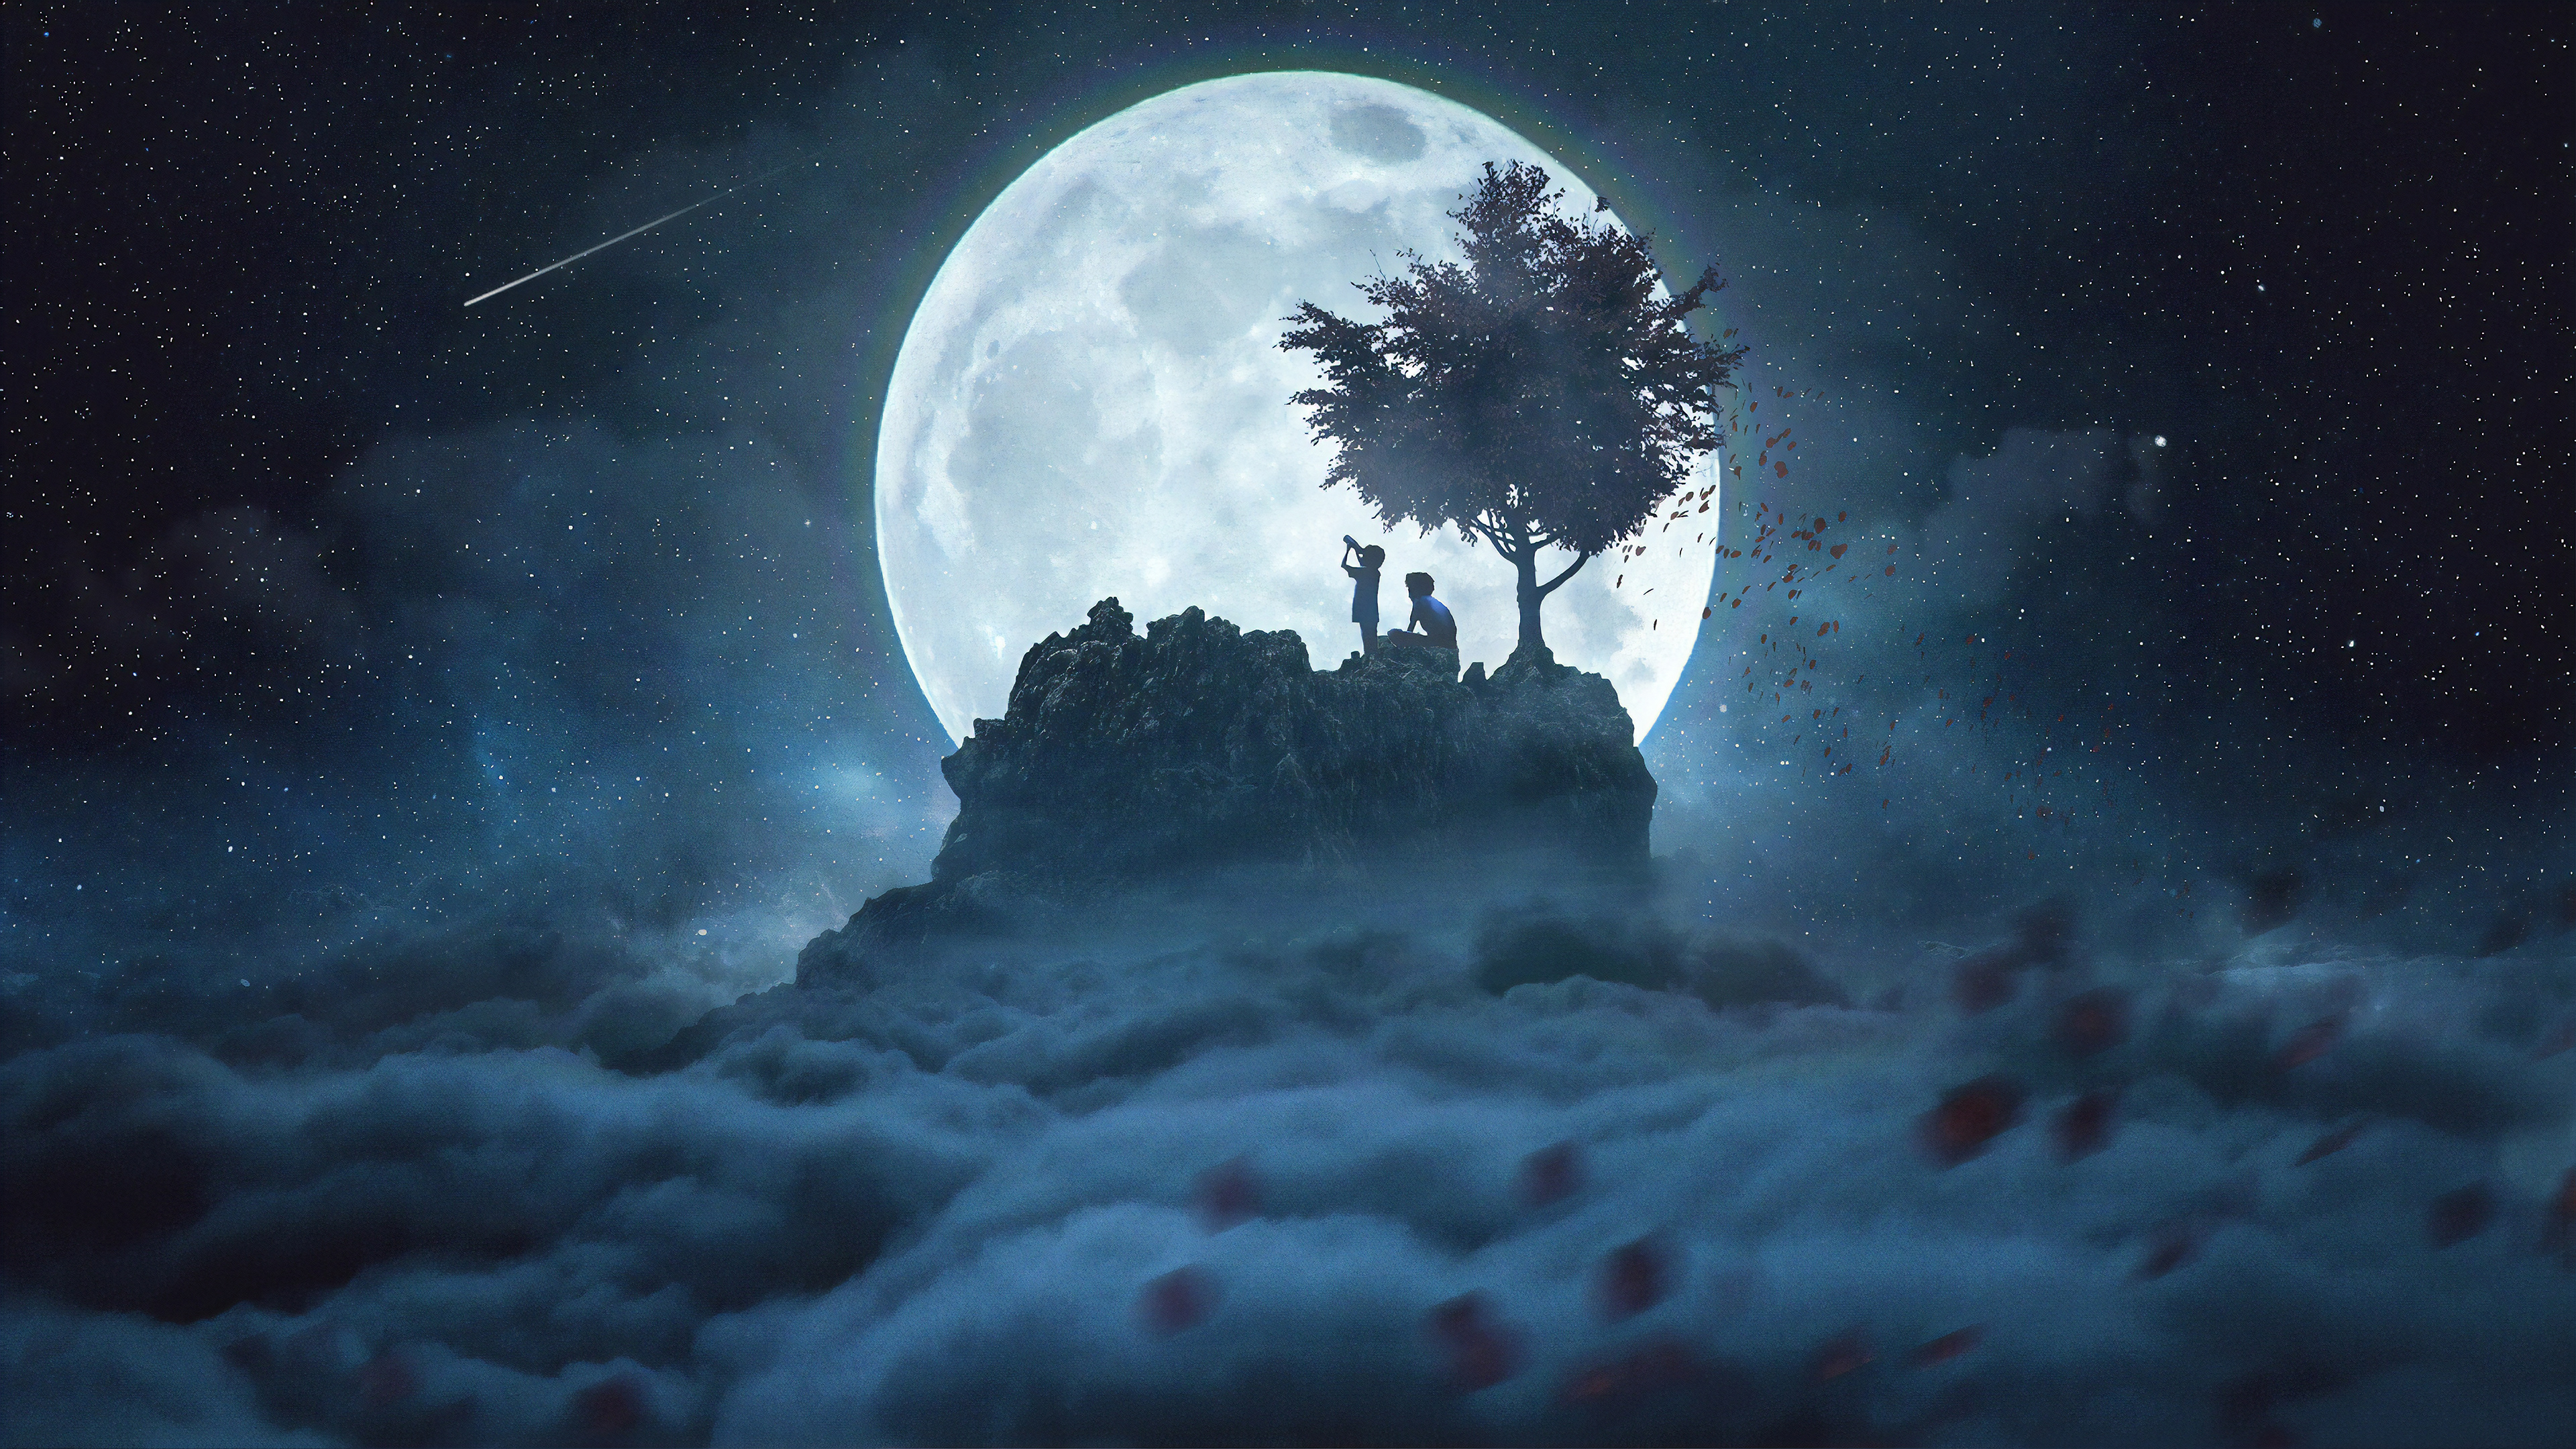 4k Talking to the Moon Wallpaper HD Artist 4K Wallpapers Images 3840x2160